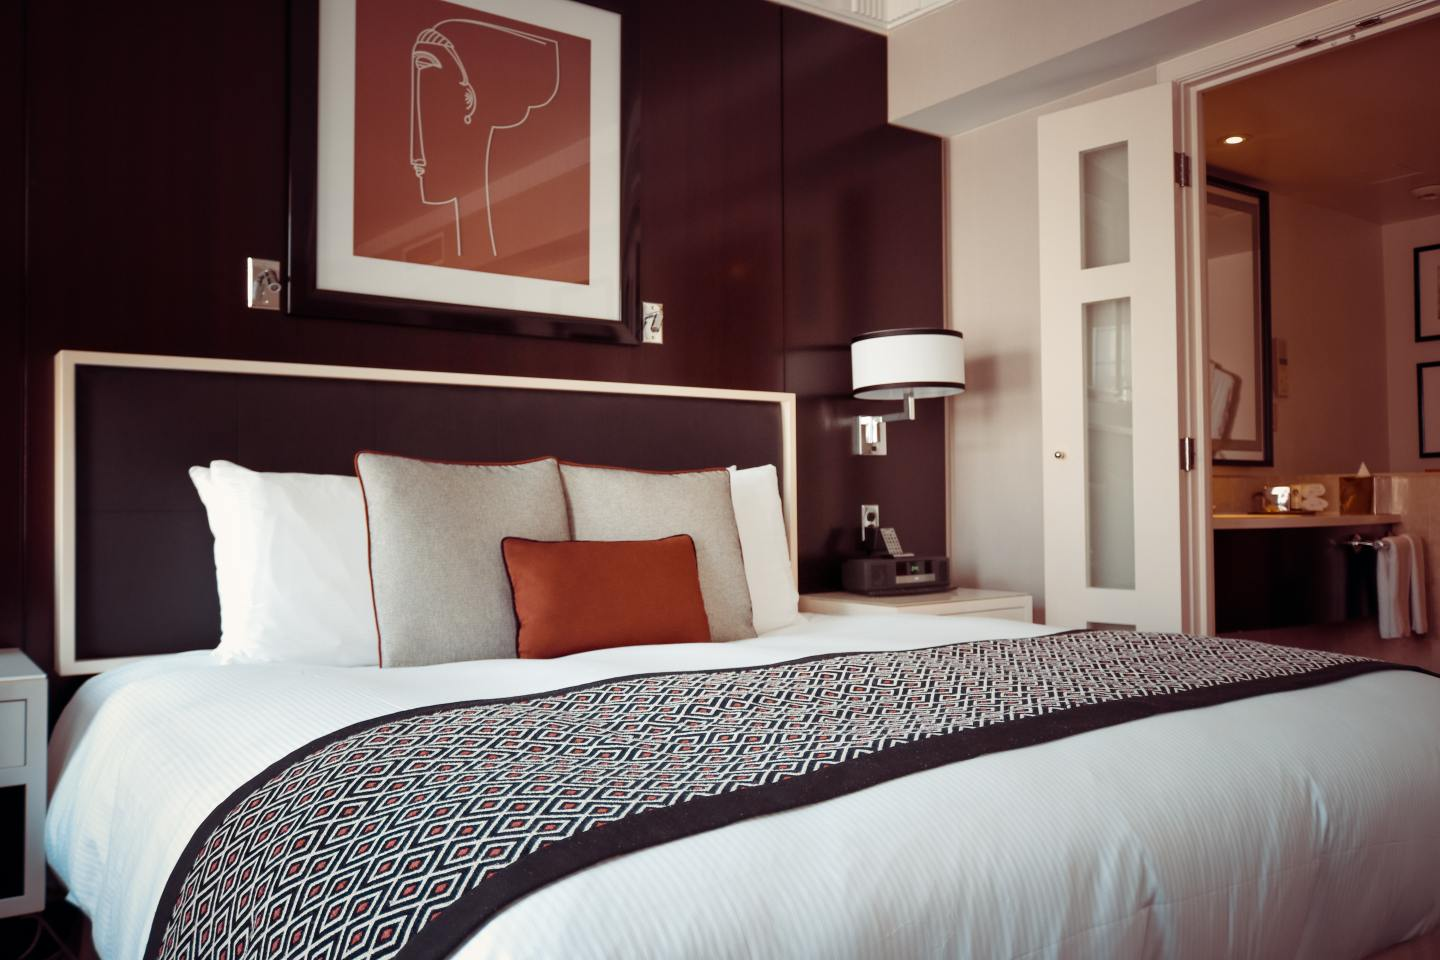 Beautiful hotel room and bed with cushions